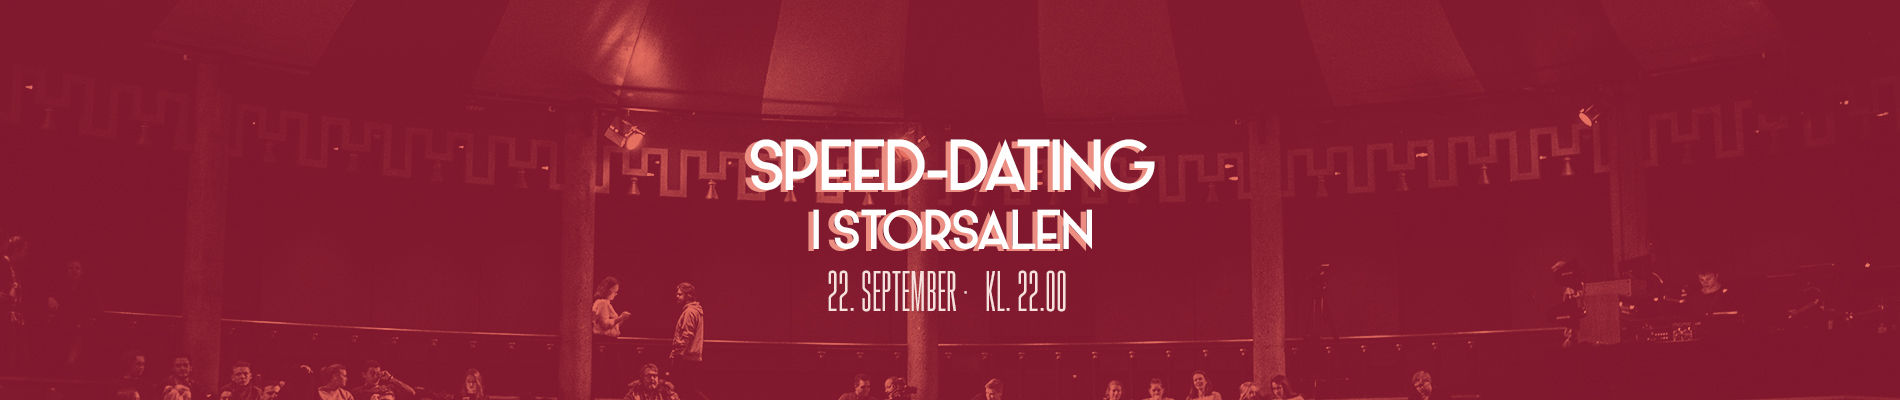 Speed dating samfundet